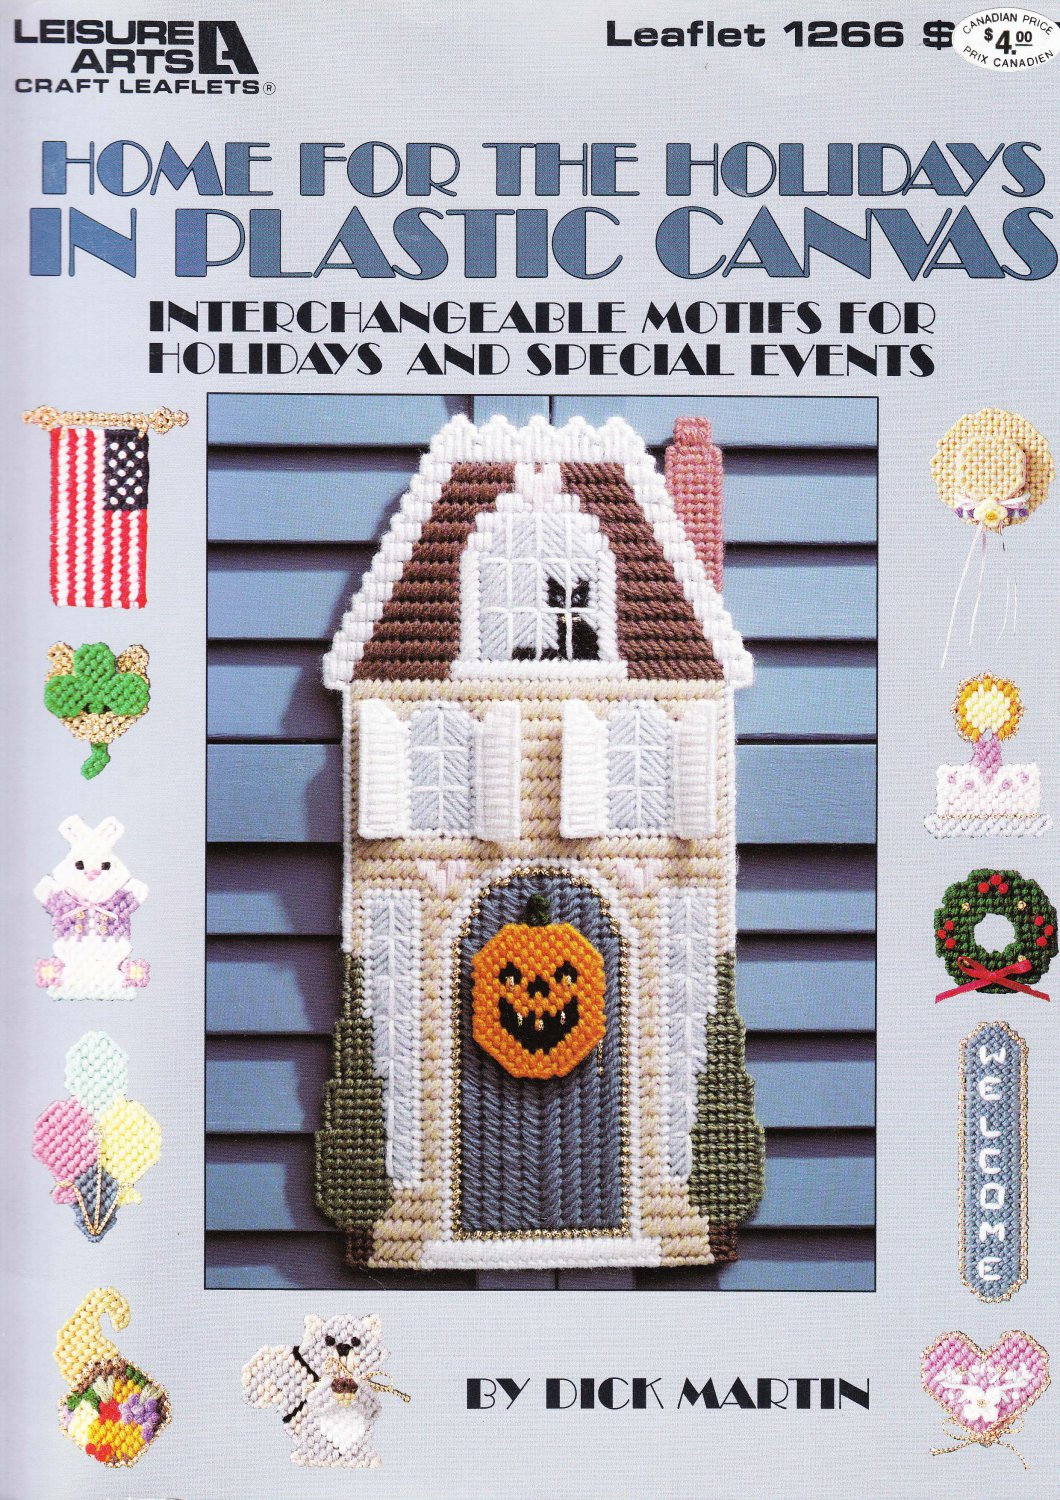 Leisure Arts 1990 Leaflet #1266 Home For The Holidays in Plastic Canvas